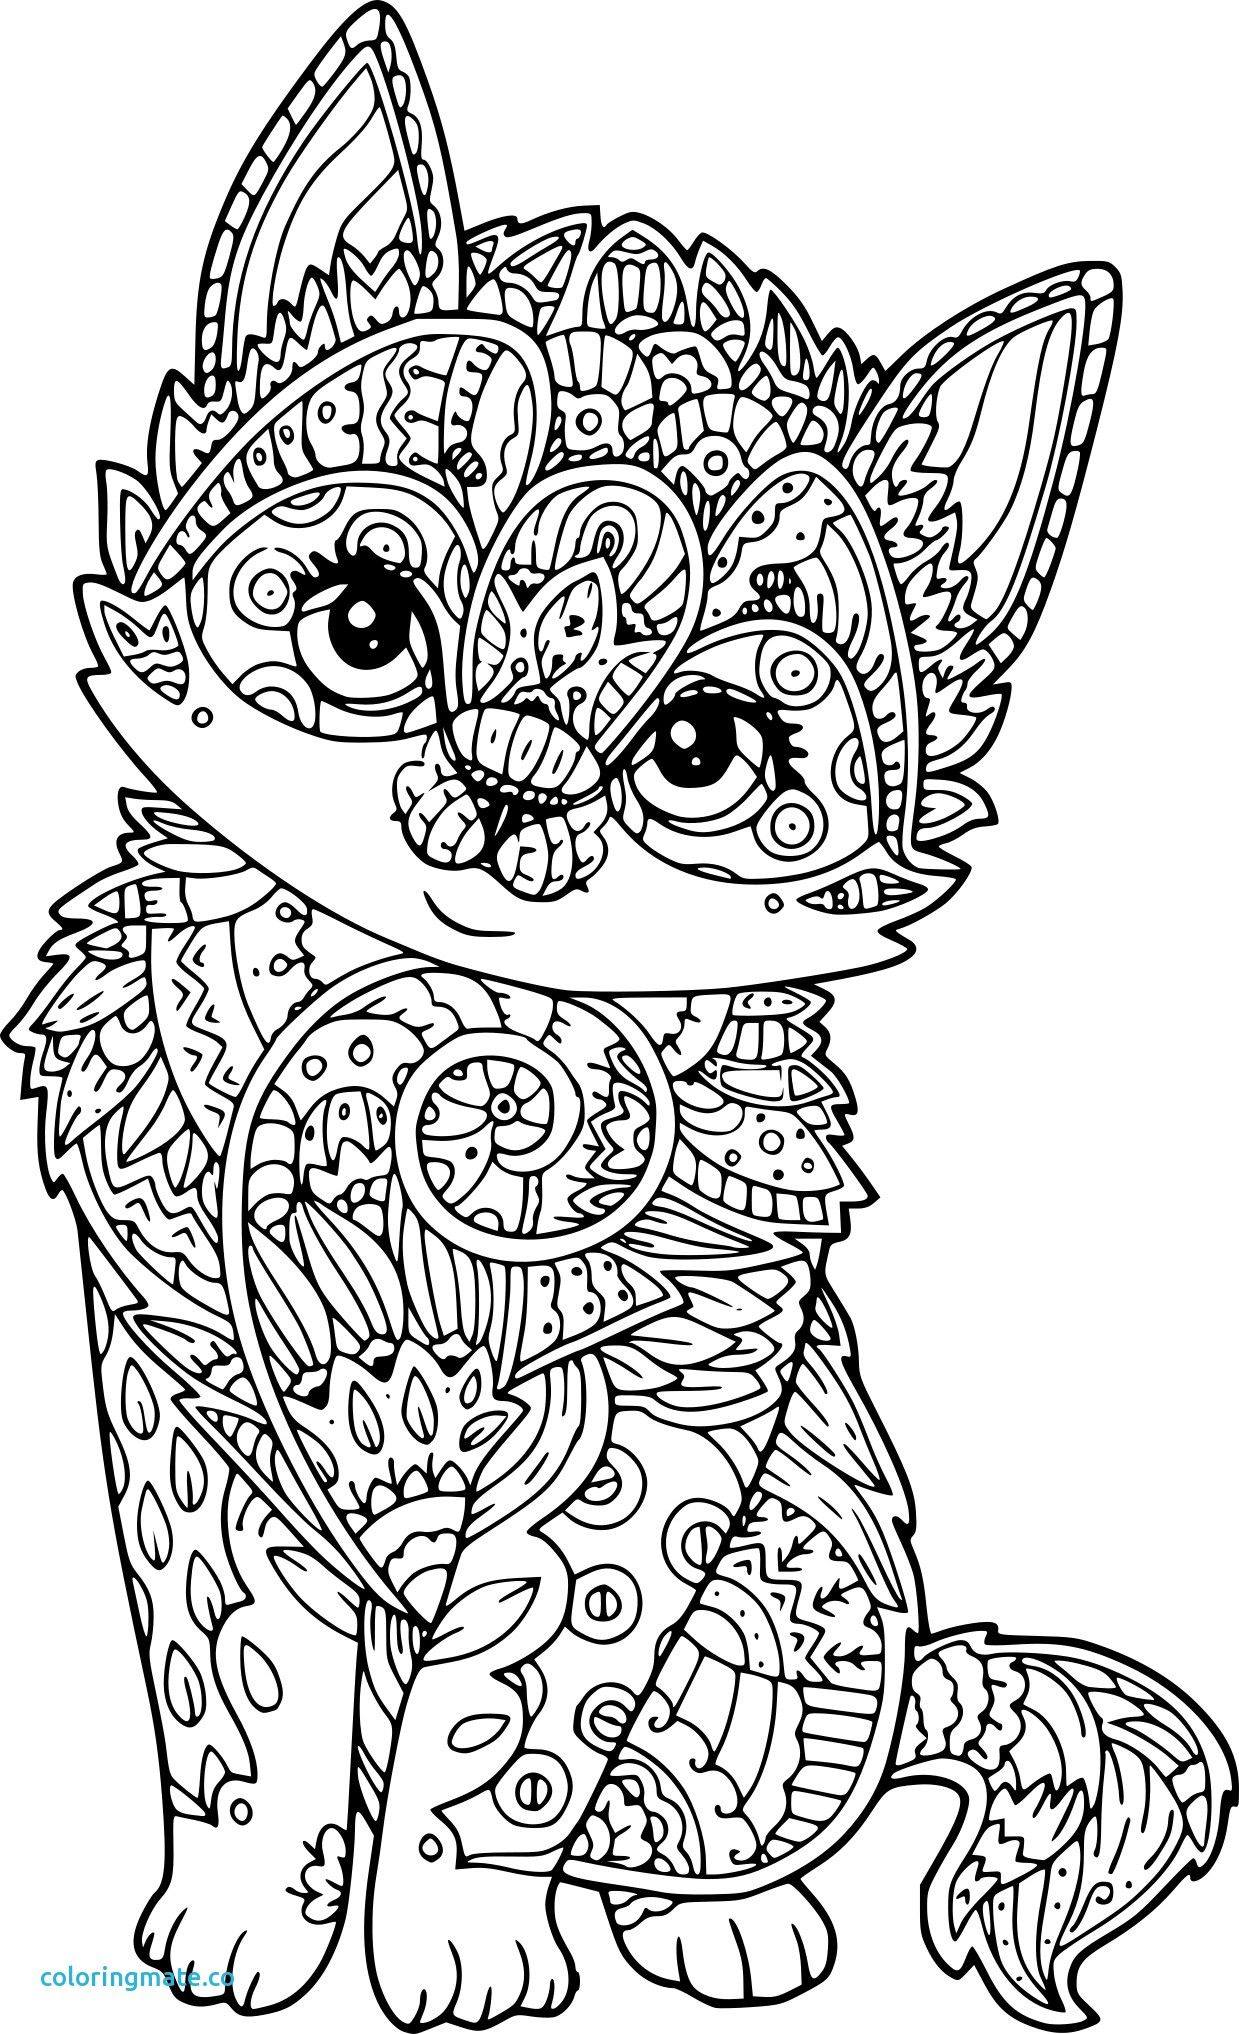 Coloriage mandala chat papillon fresh coloriage chat - Coloriage disney ...